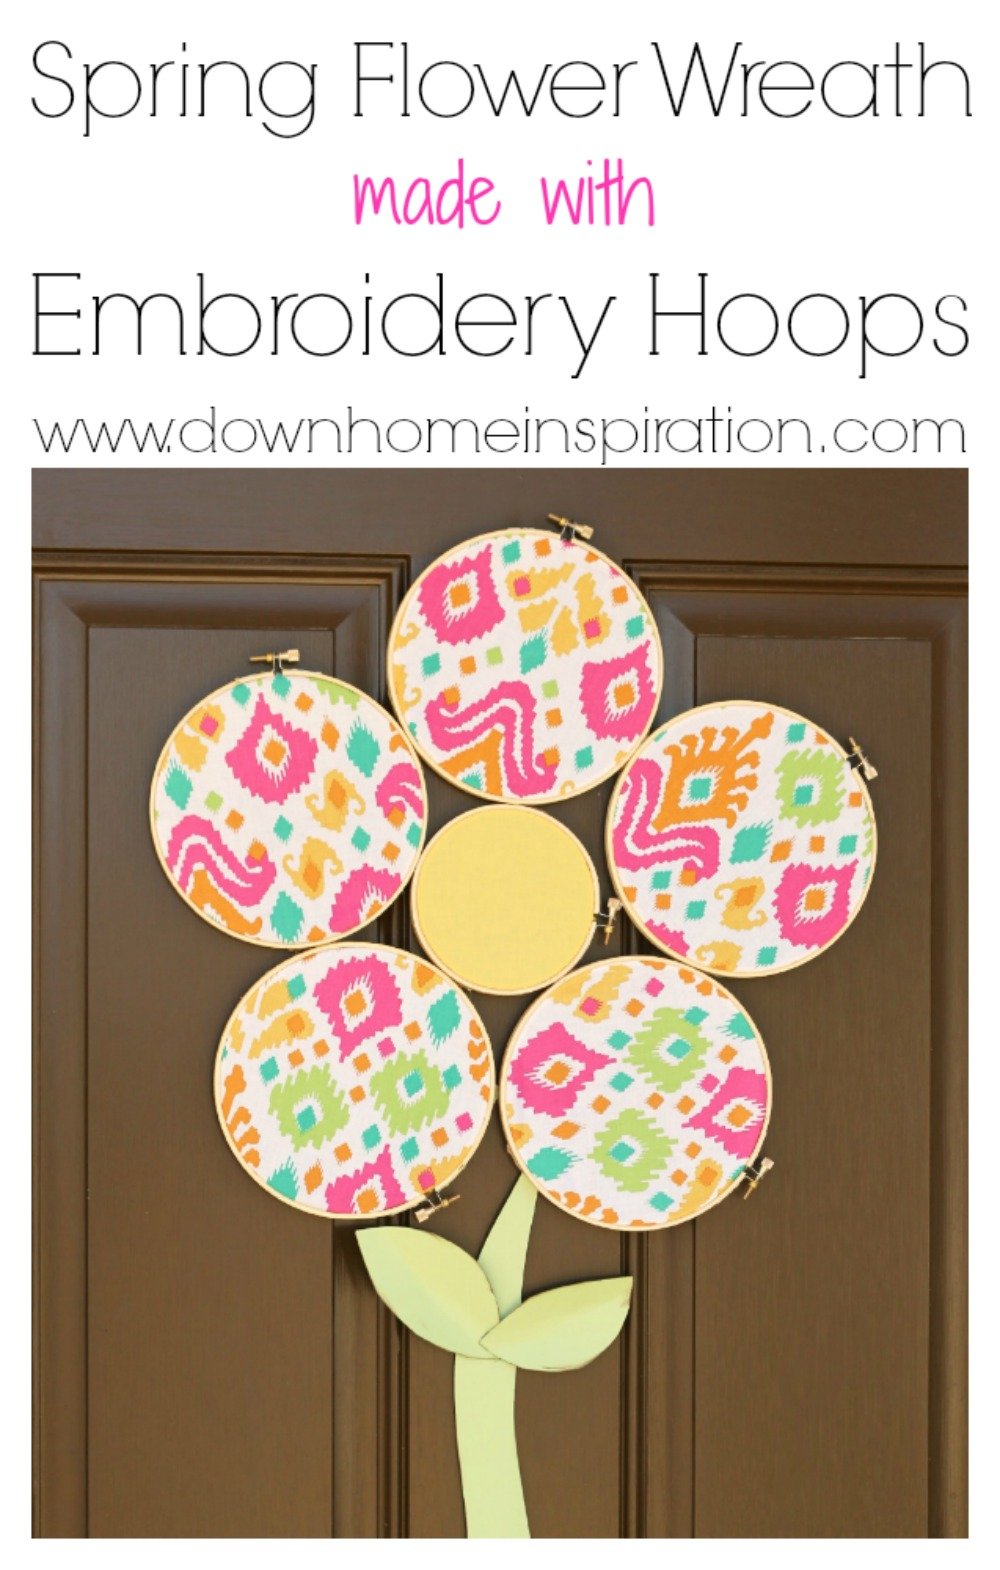 embroidery-hoop-flower-wreath-2